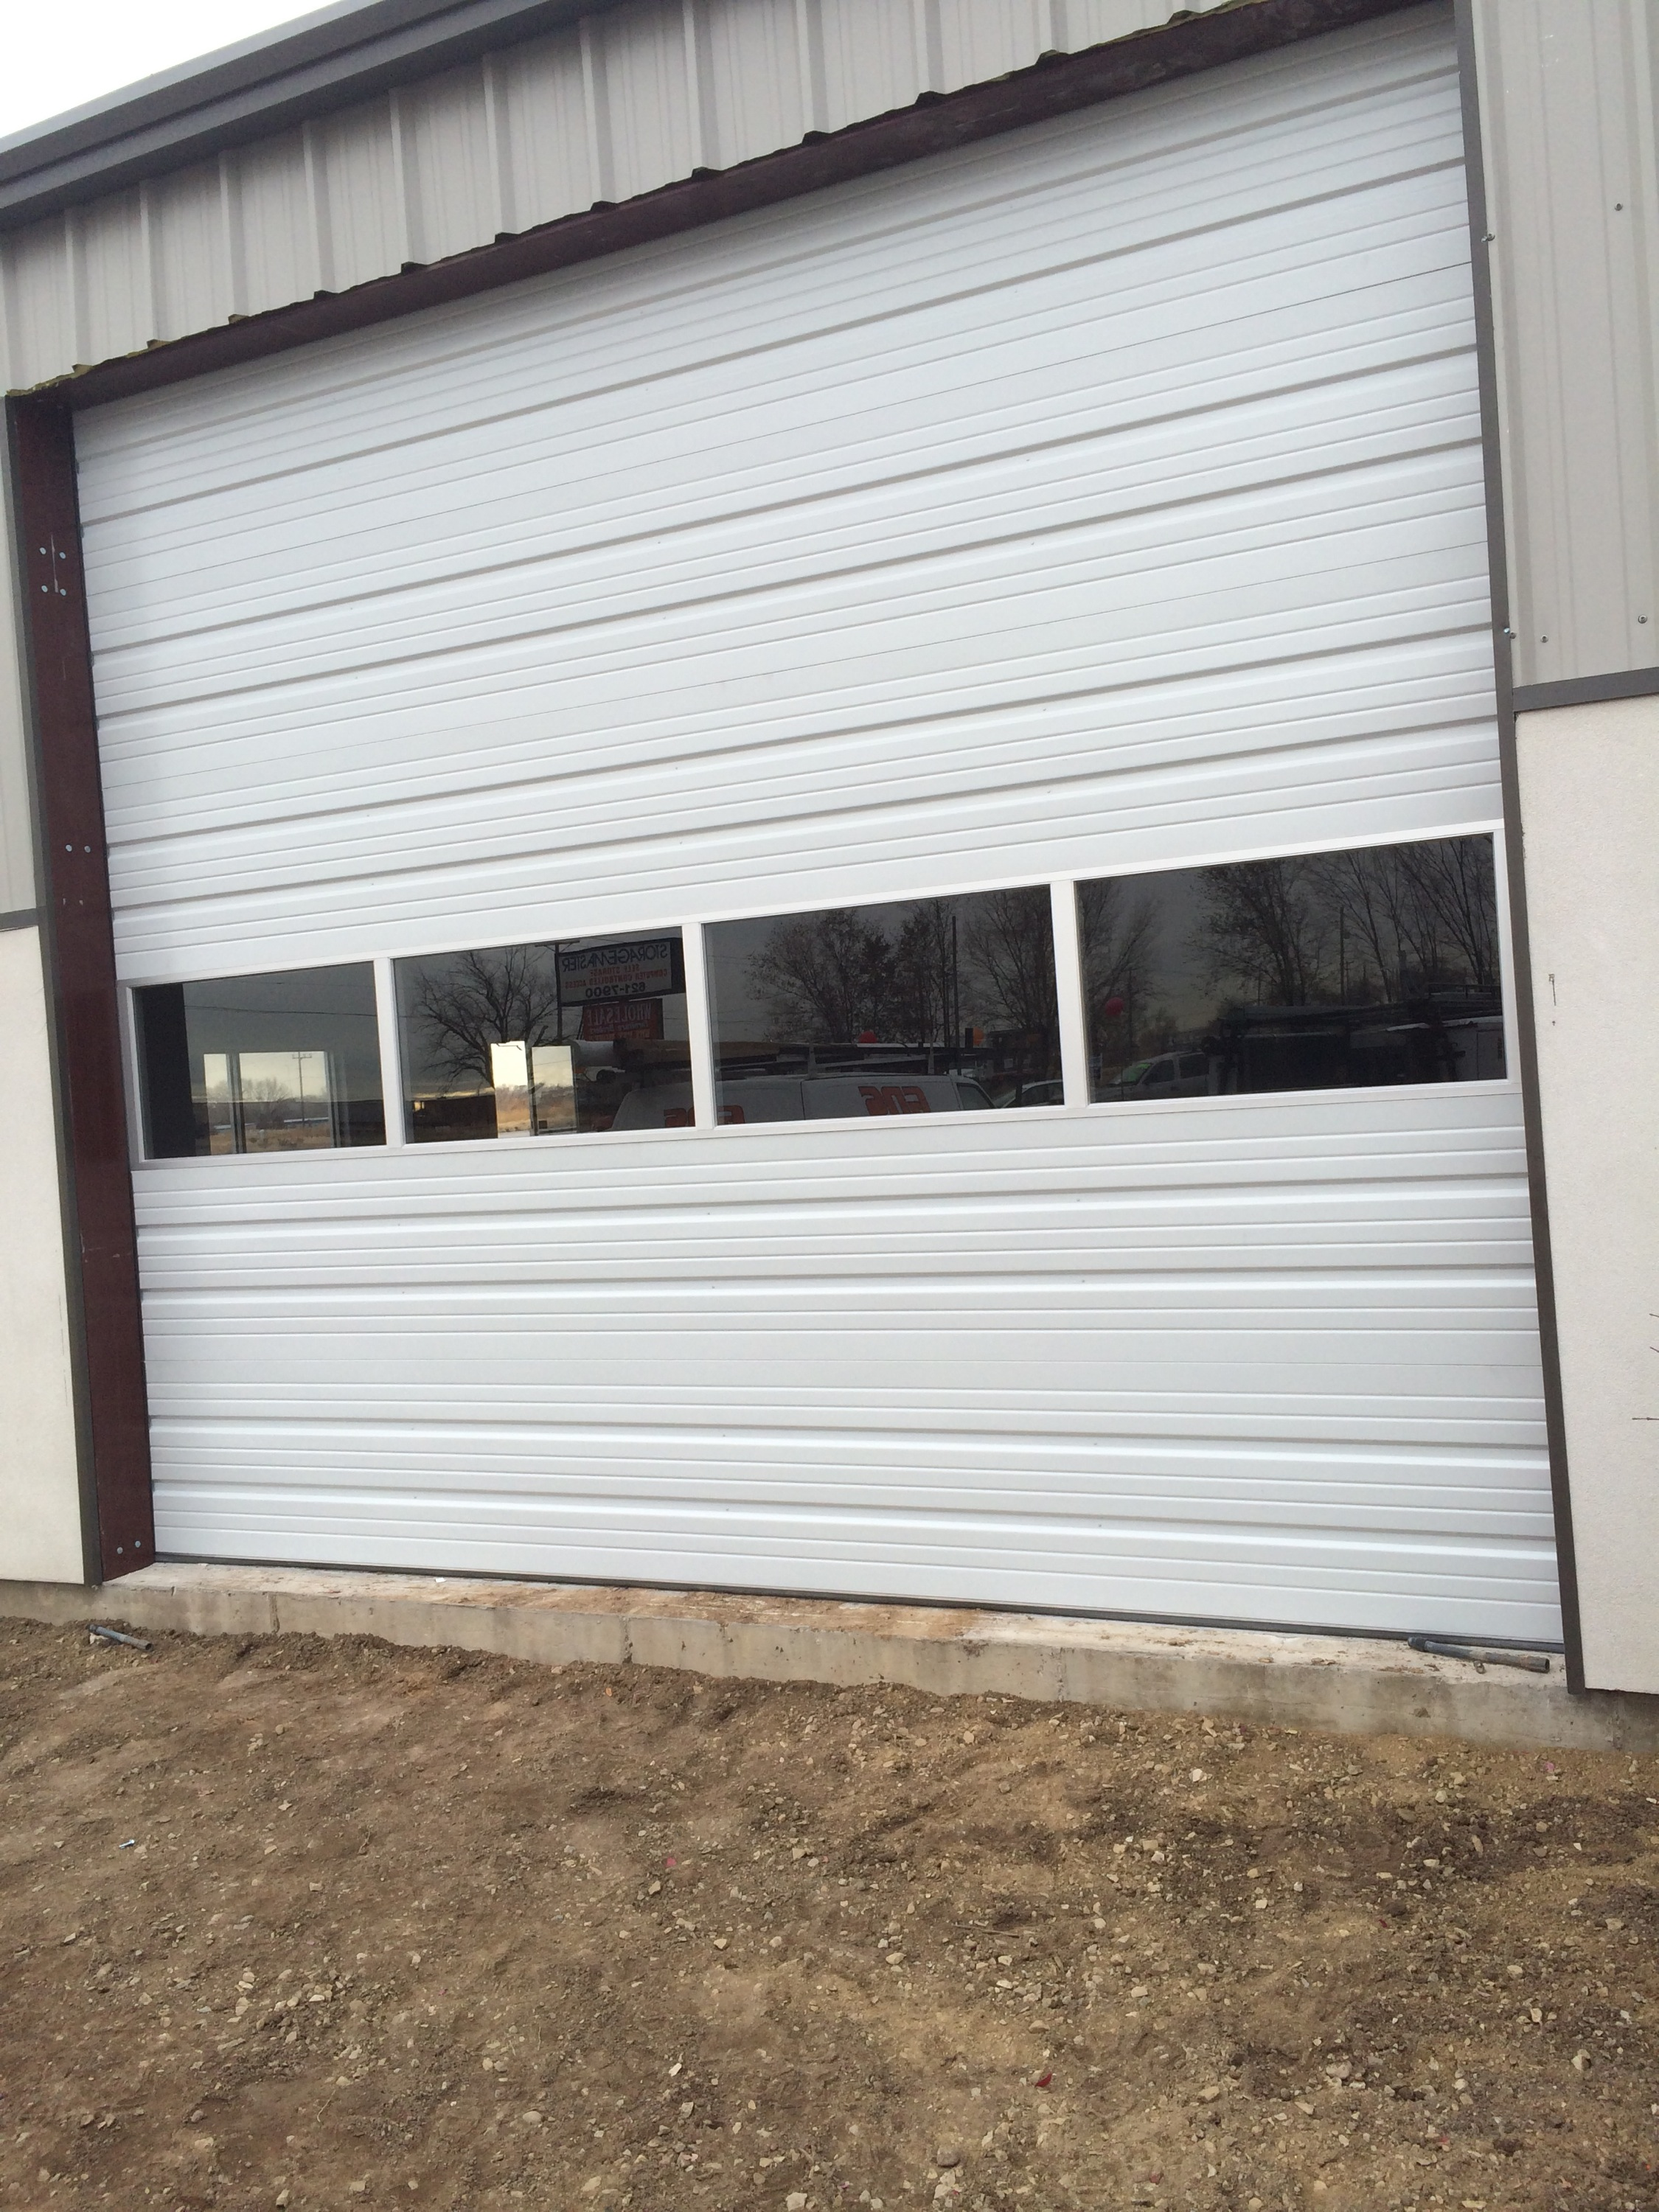 Garage Door Repair and Service in Layton Utah  A fine WordPresscom site